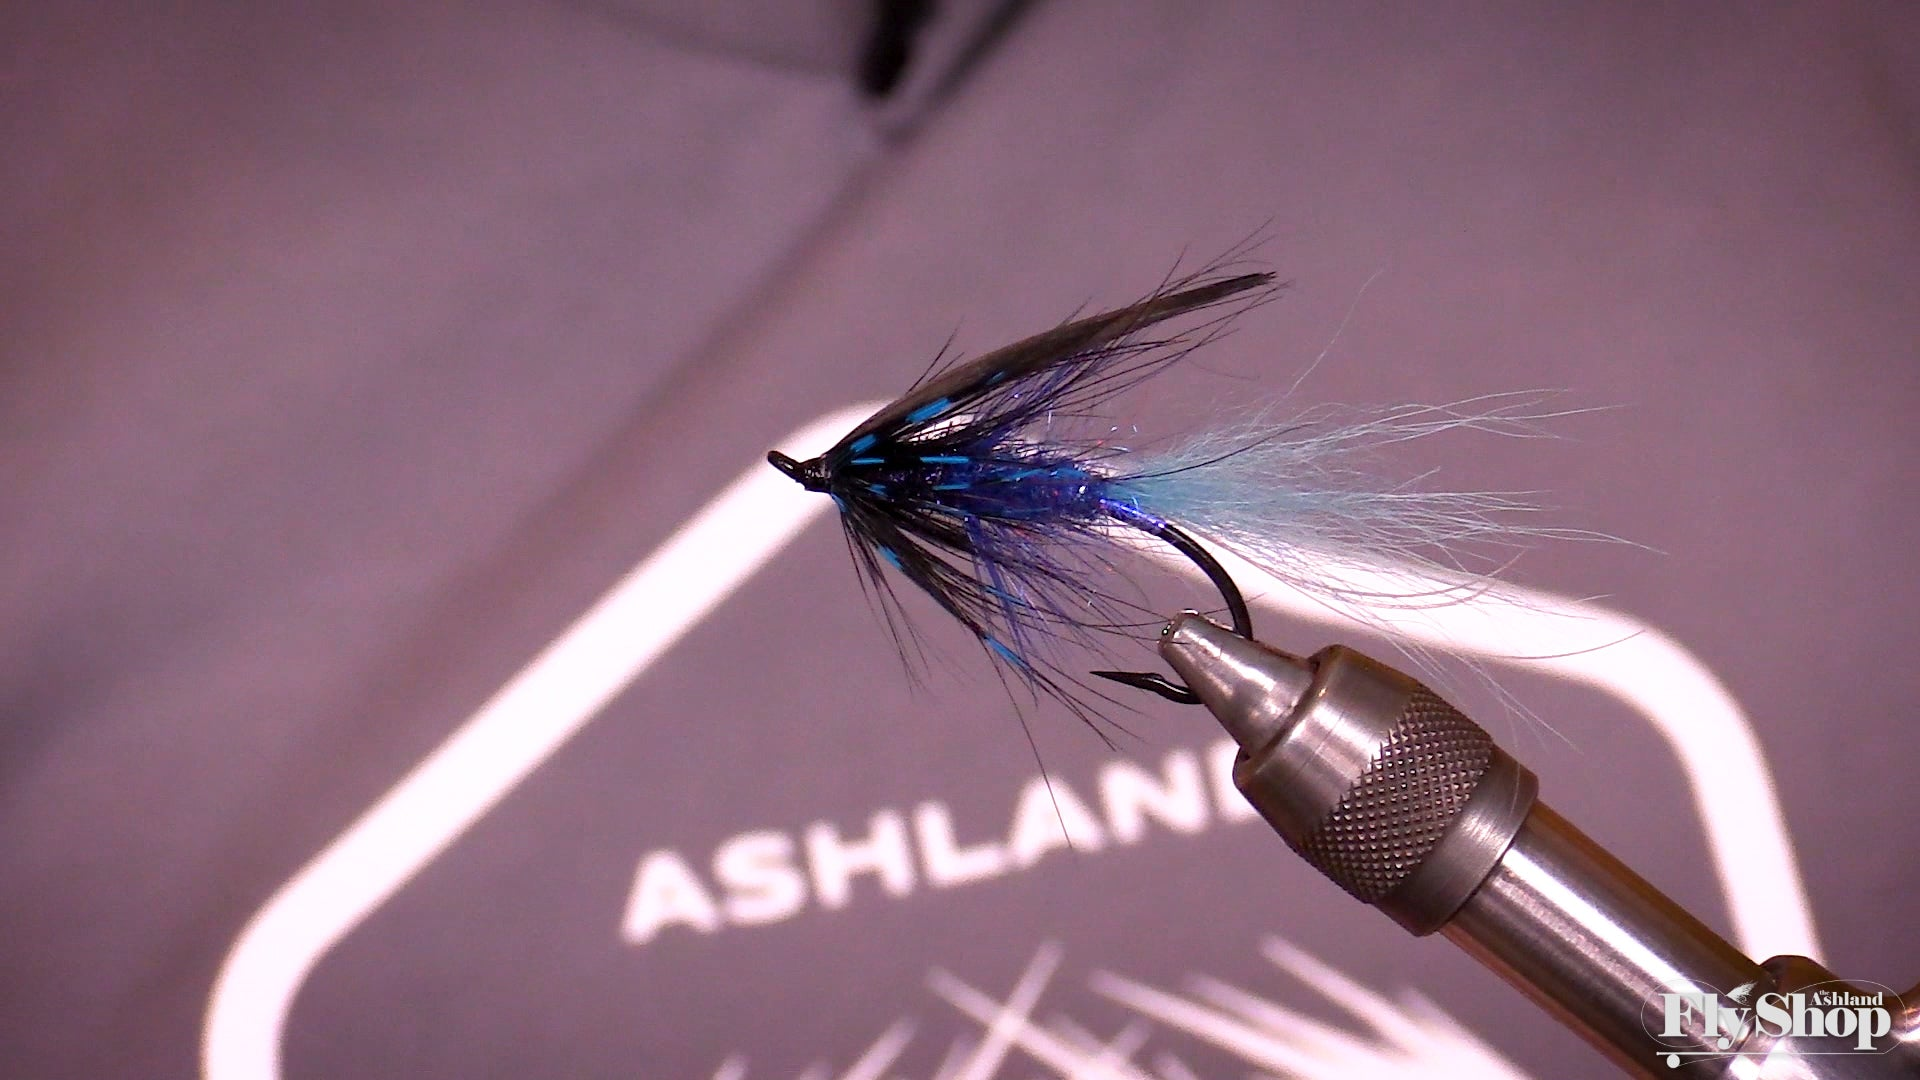 General Practitioner W/ Stuart Warren | At The Vise